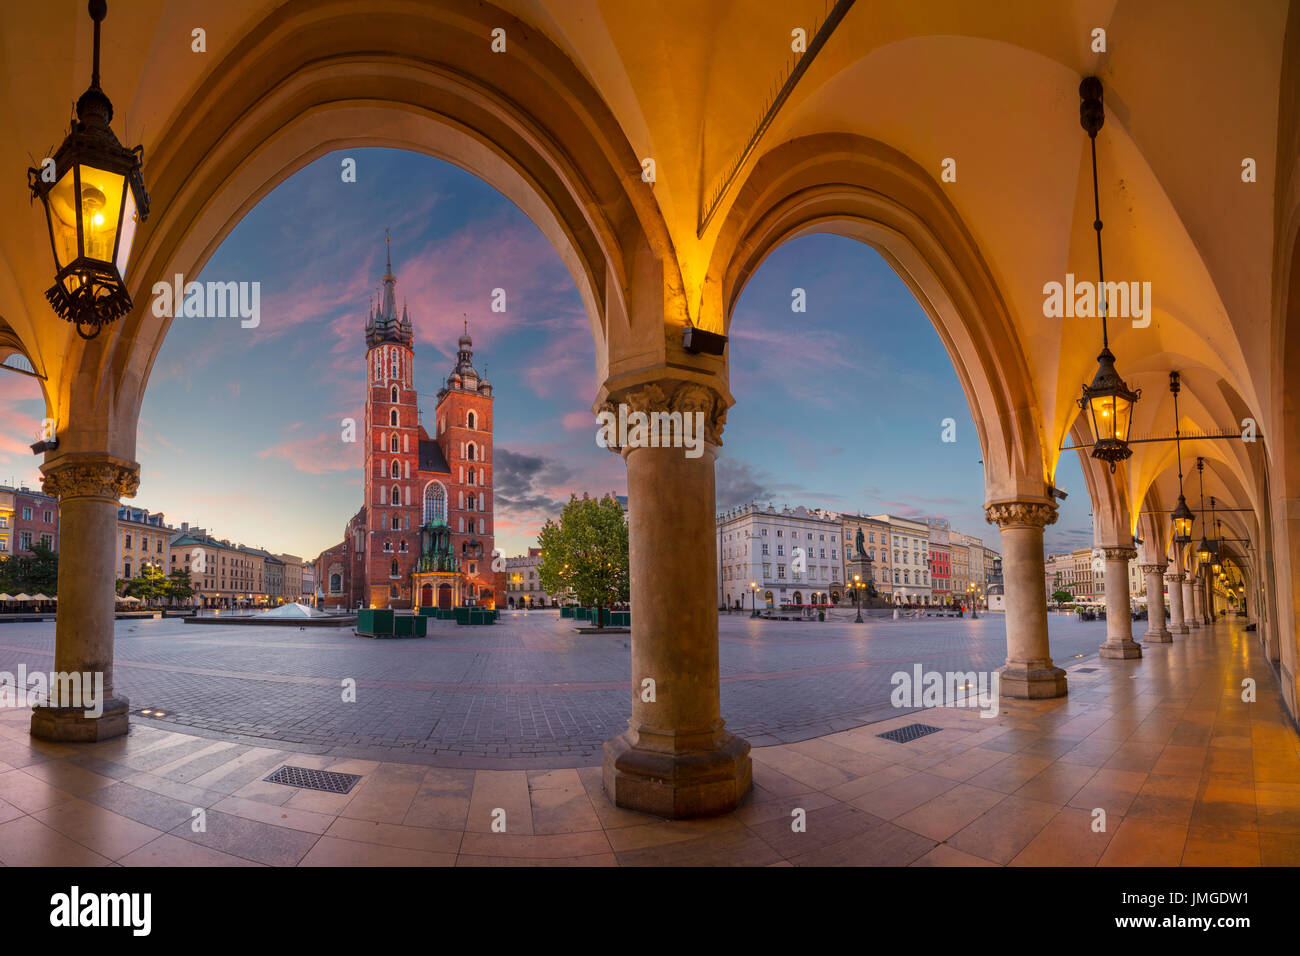 Cracovie. Droit de place du marché de Cracovie, Pologne pendant le lever du soleil. Photo Stock